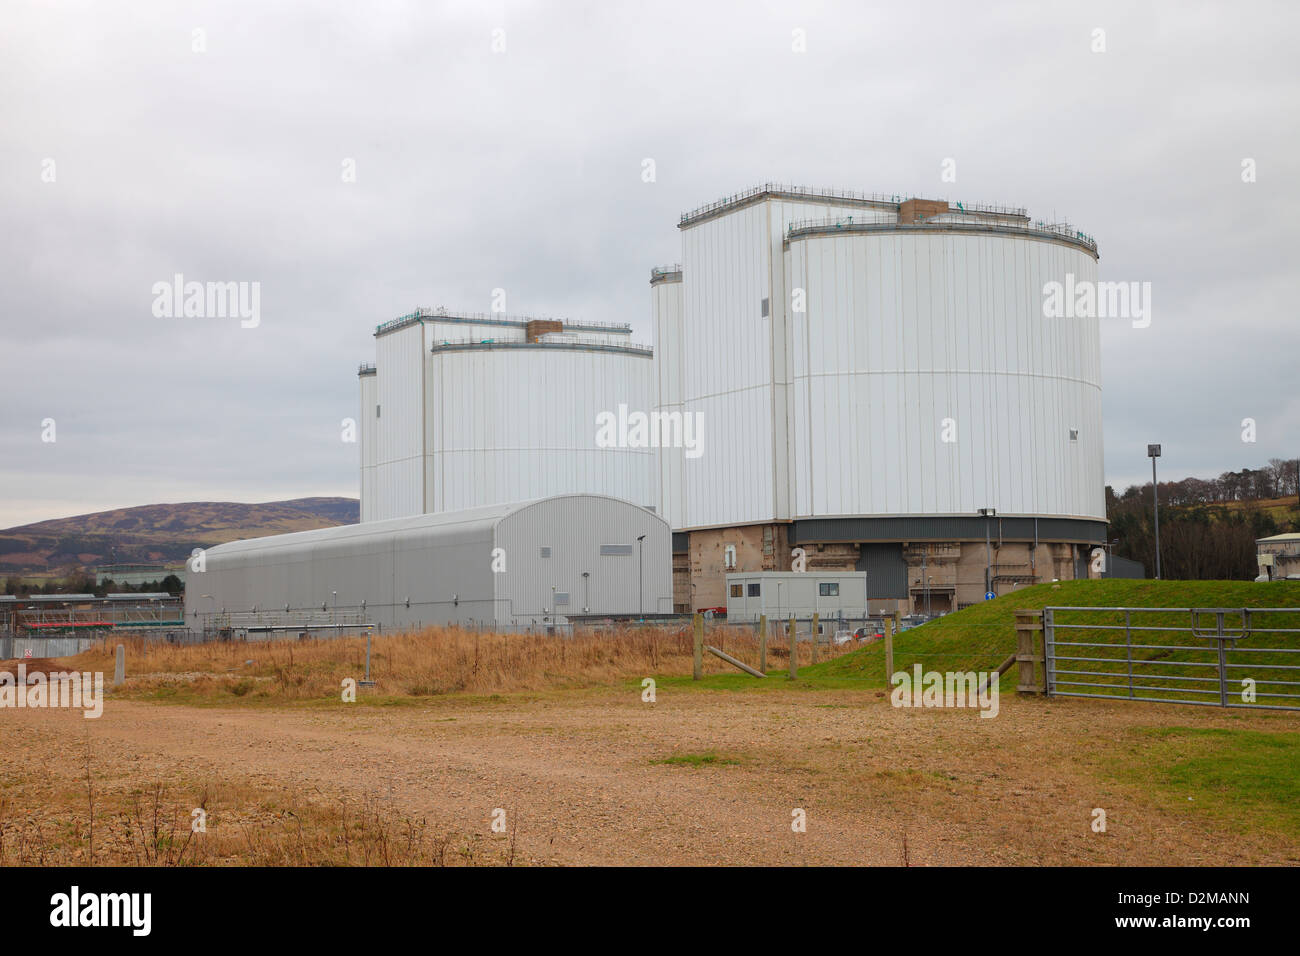 Hunterston A Nuclear Power Station near Largs in Ayrshire, Scotland. United Kingdom - Stock Image